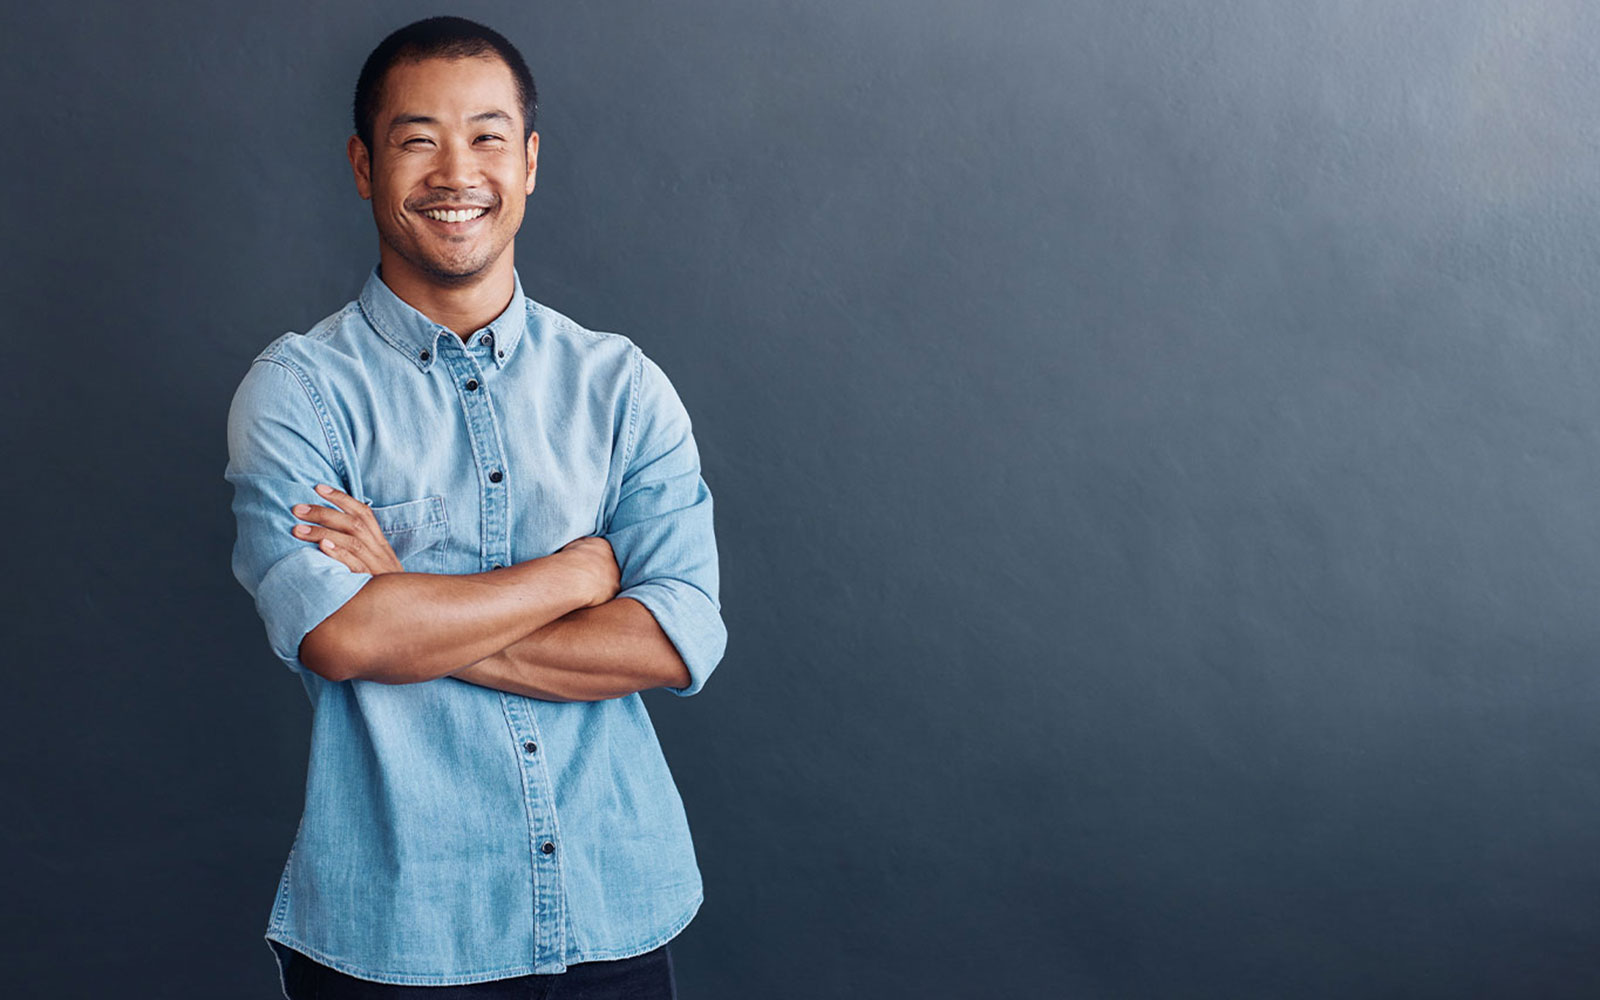 Digital Marketer with arms crossed smiling